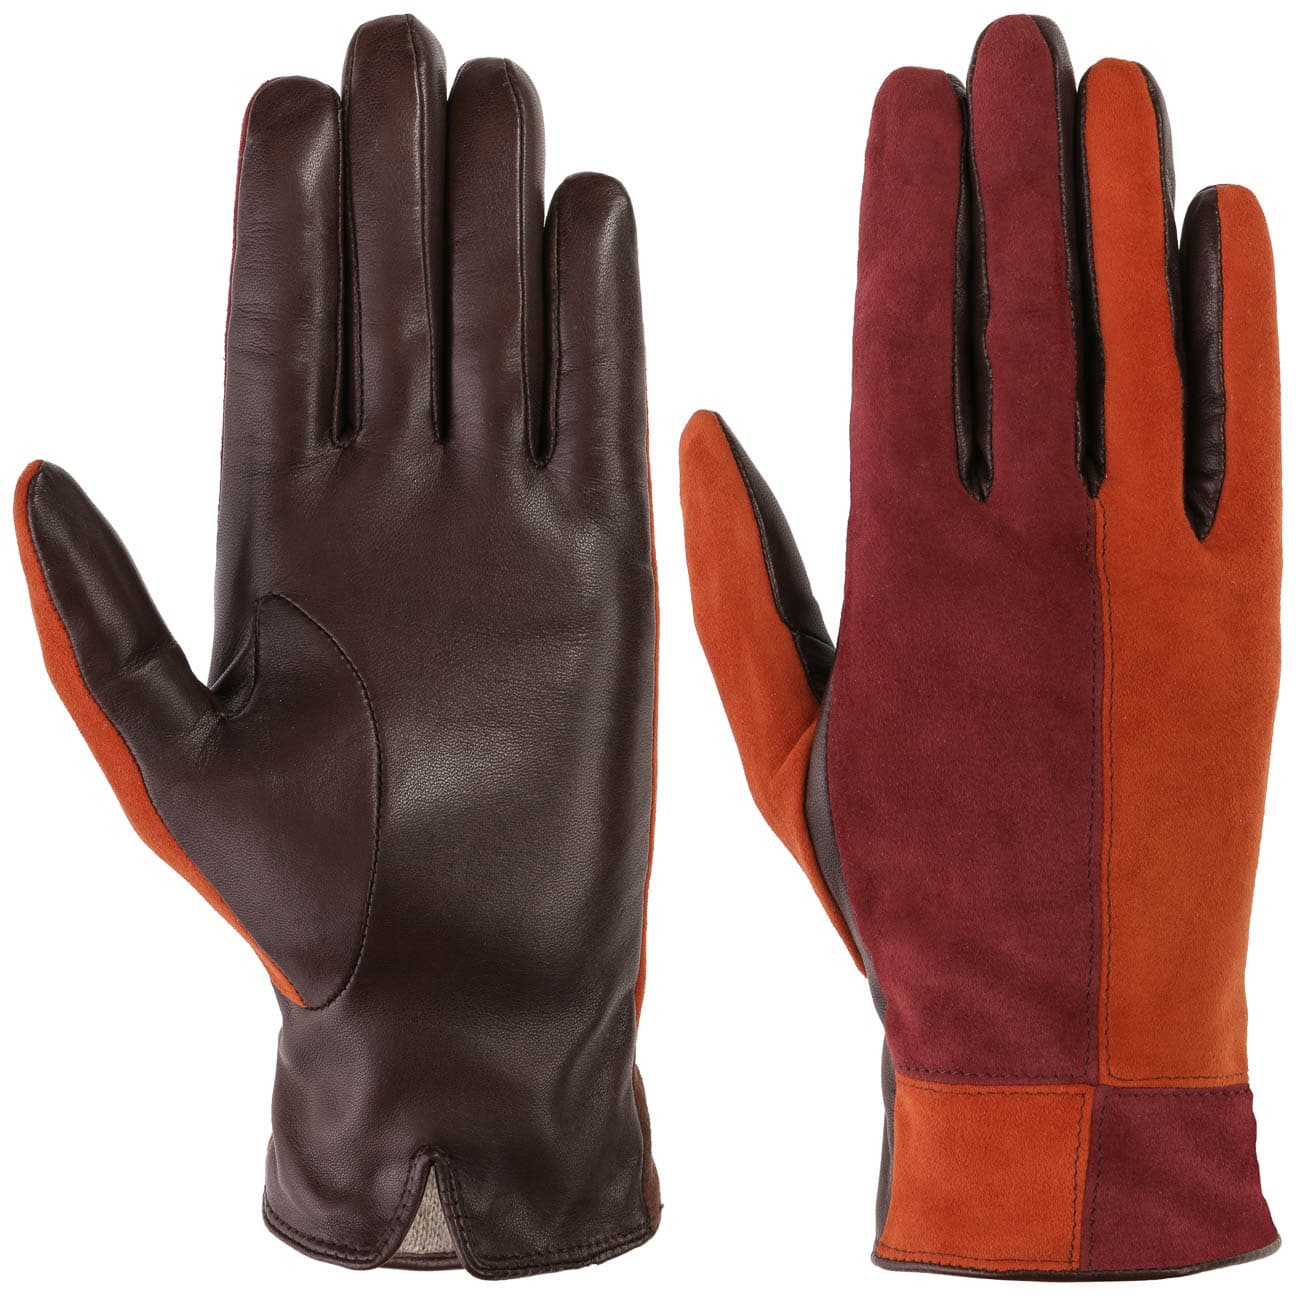 Guantes de Mujer Leather Mix by Caridei  guantes con dedos